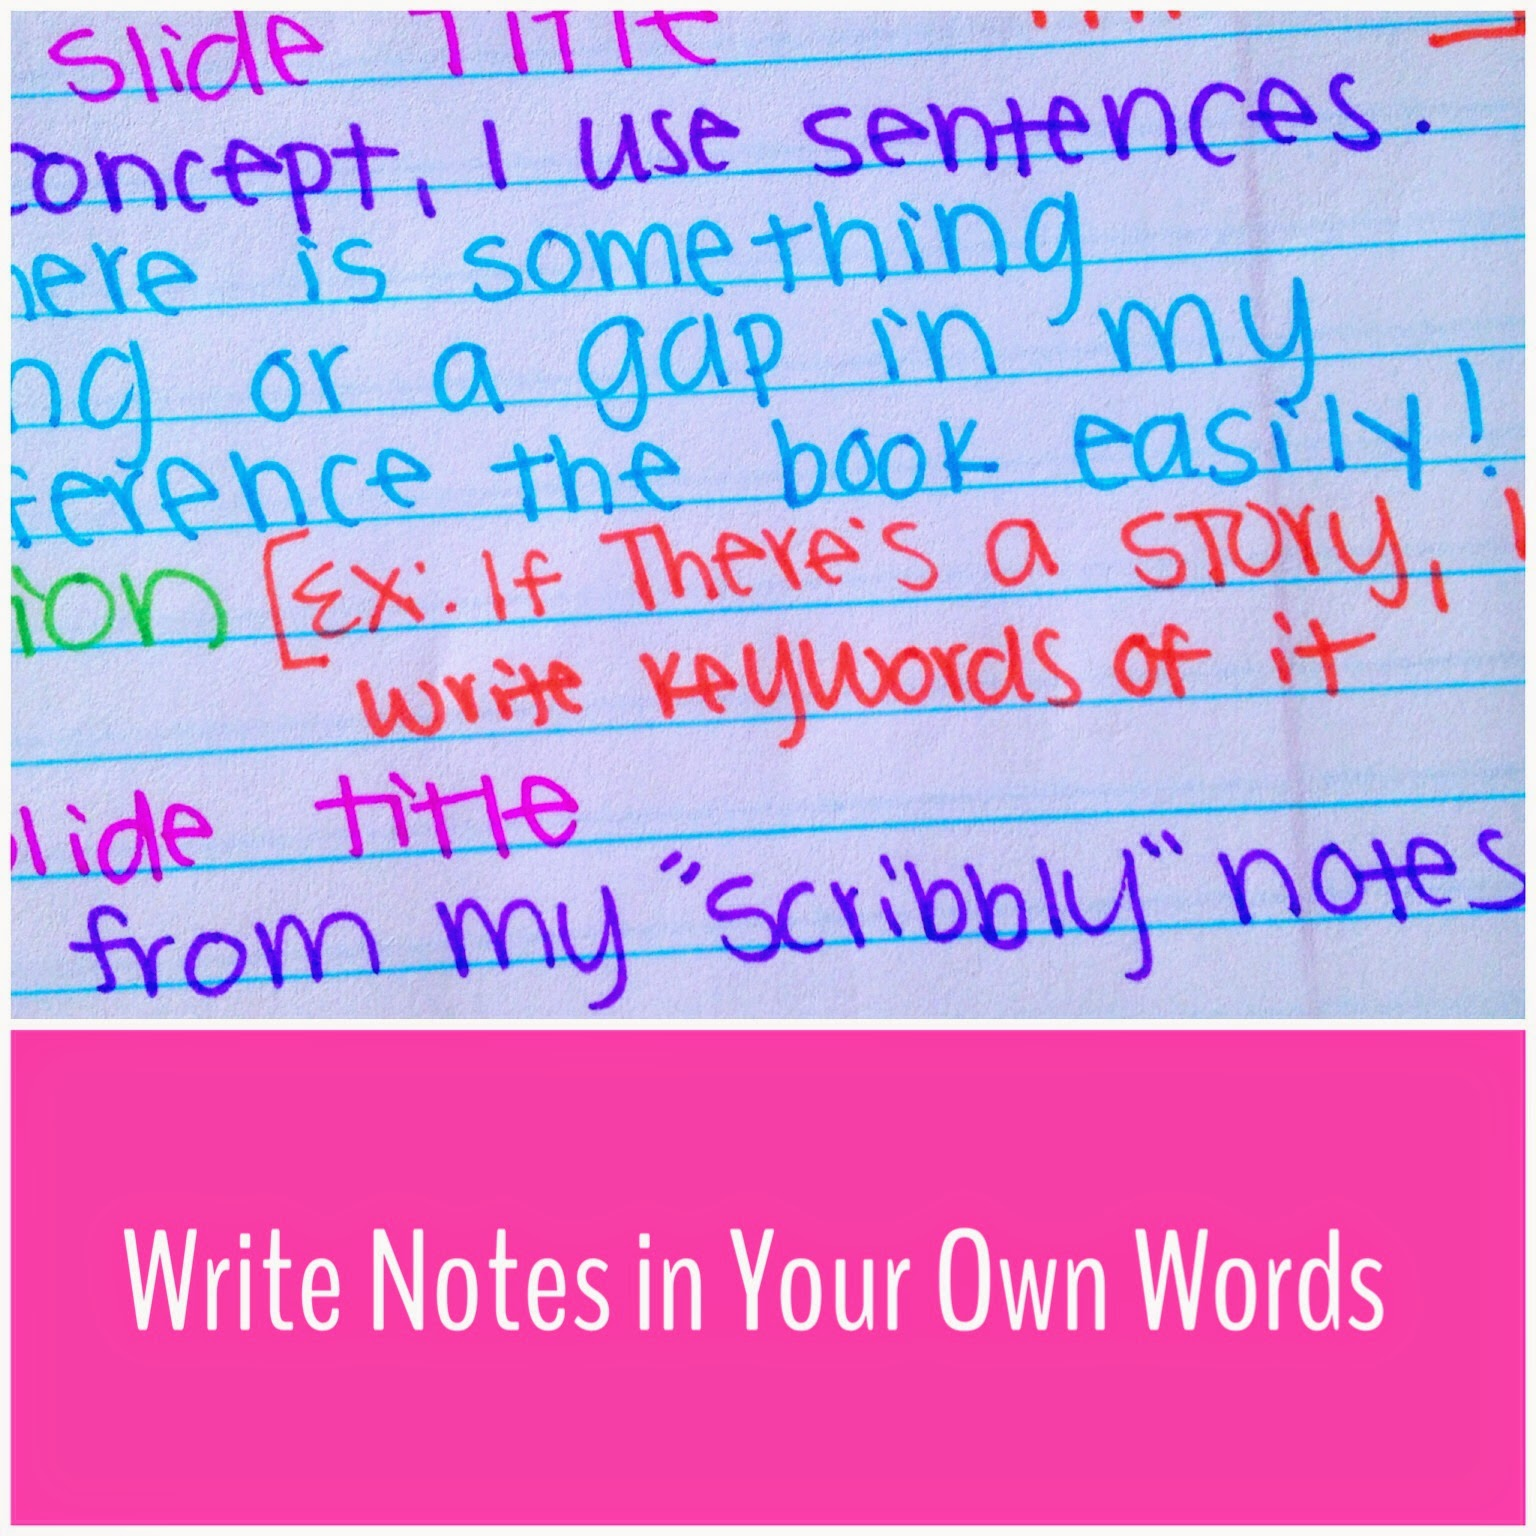 Write in your own words